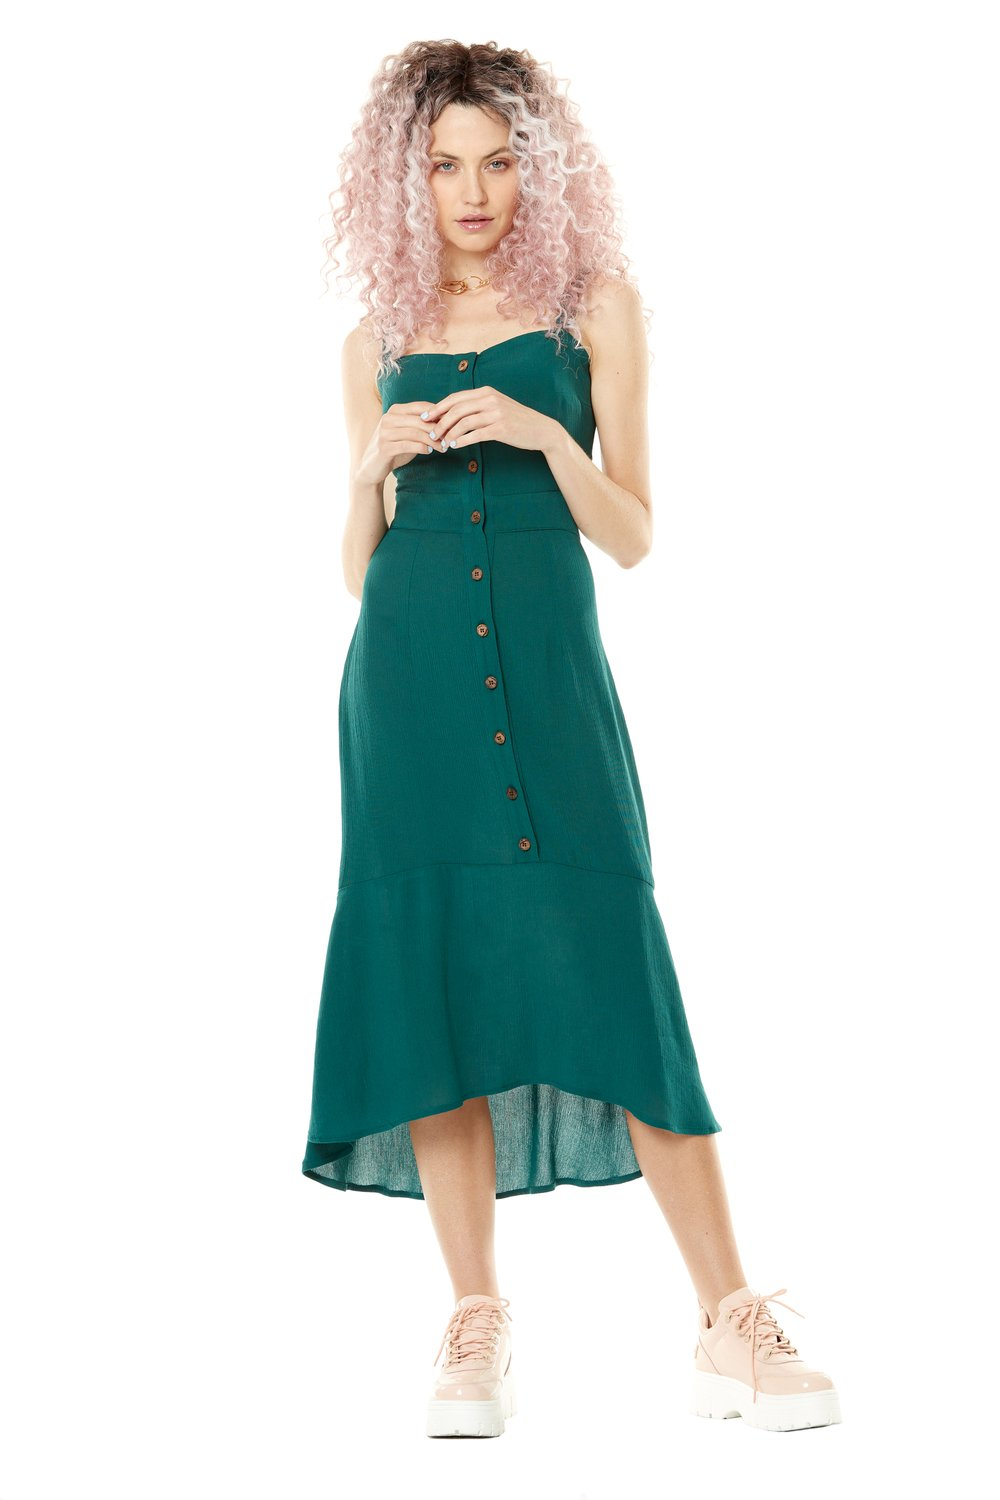 Lune de Miel Dress by Annie 50, Emerald, button up front, flared skirt, fitted bodice, open lower back, adjustable spaghetti straps, sizes XS to L, made in Quebec